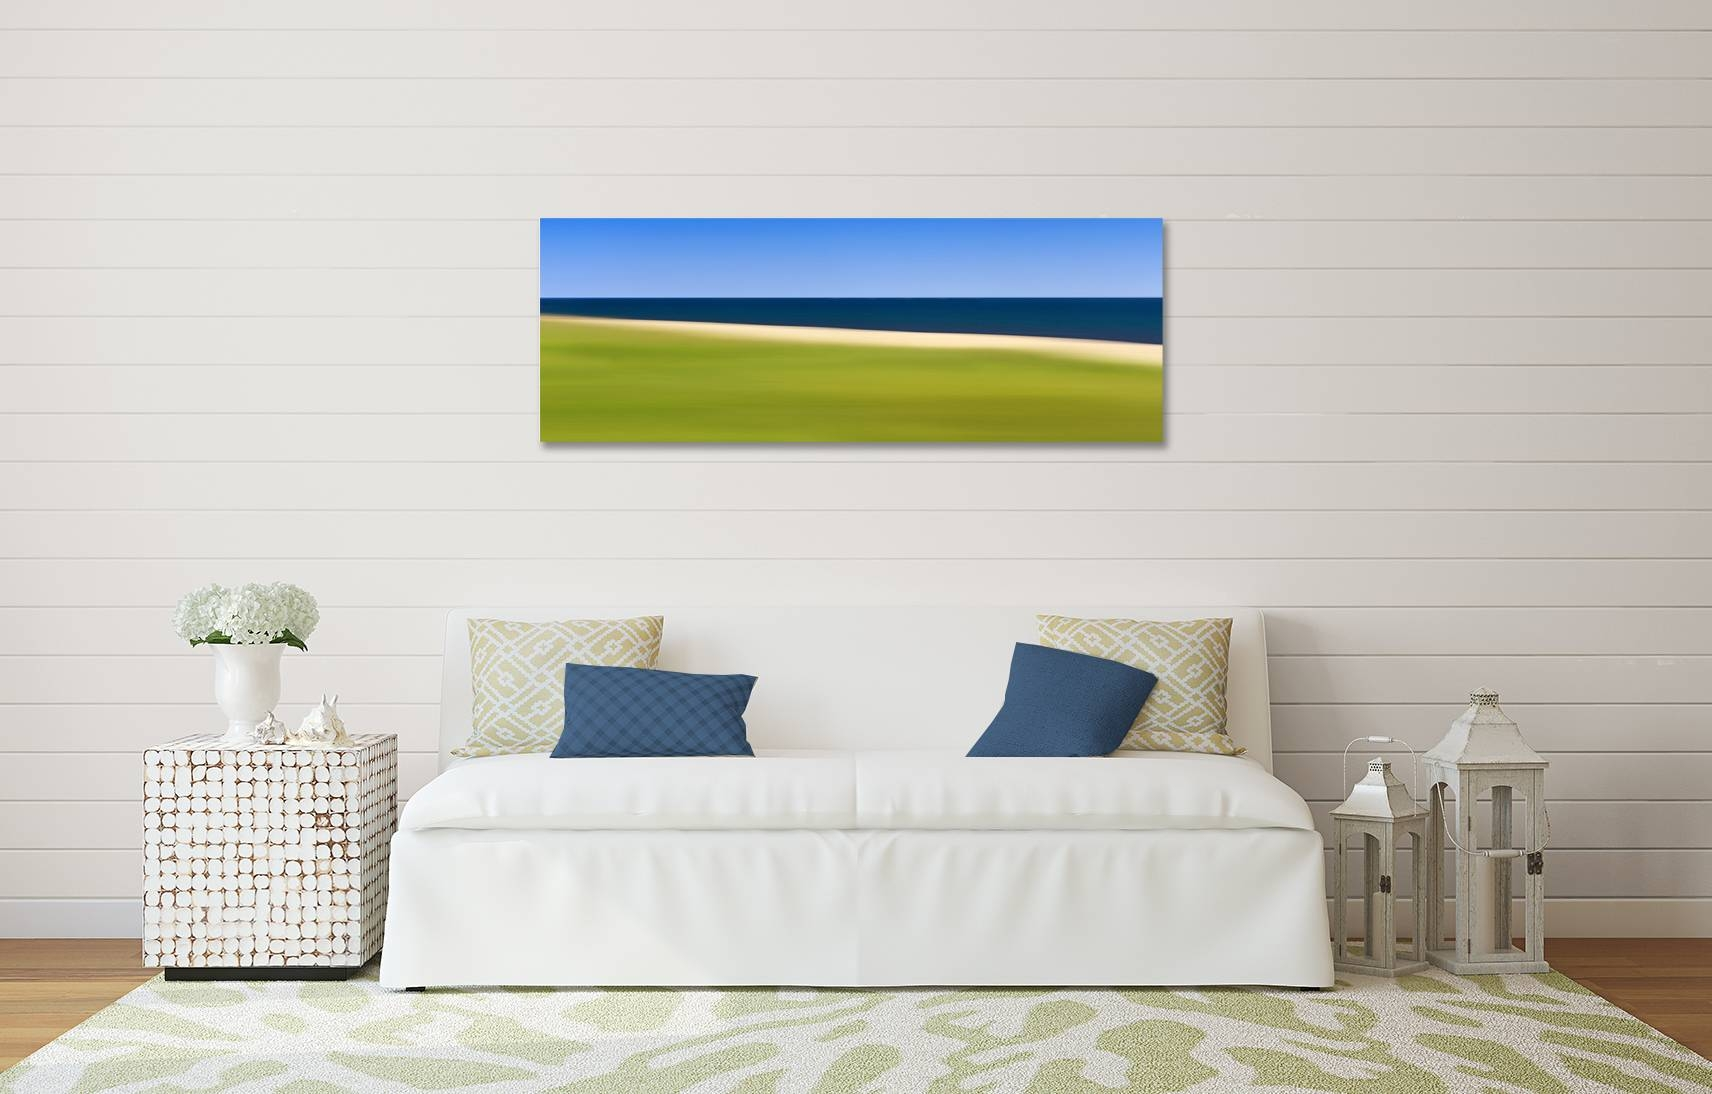 Fine Art Prints For Sale | Abstract Art, Large Canvas Wall Art With Regard To Newest Lime Green Wall Art (View 9 of 20)